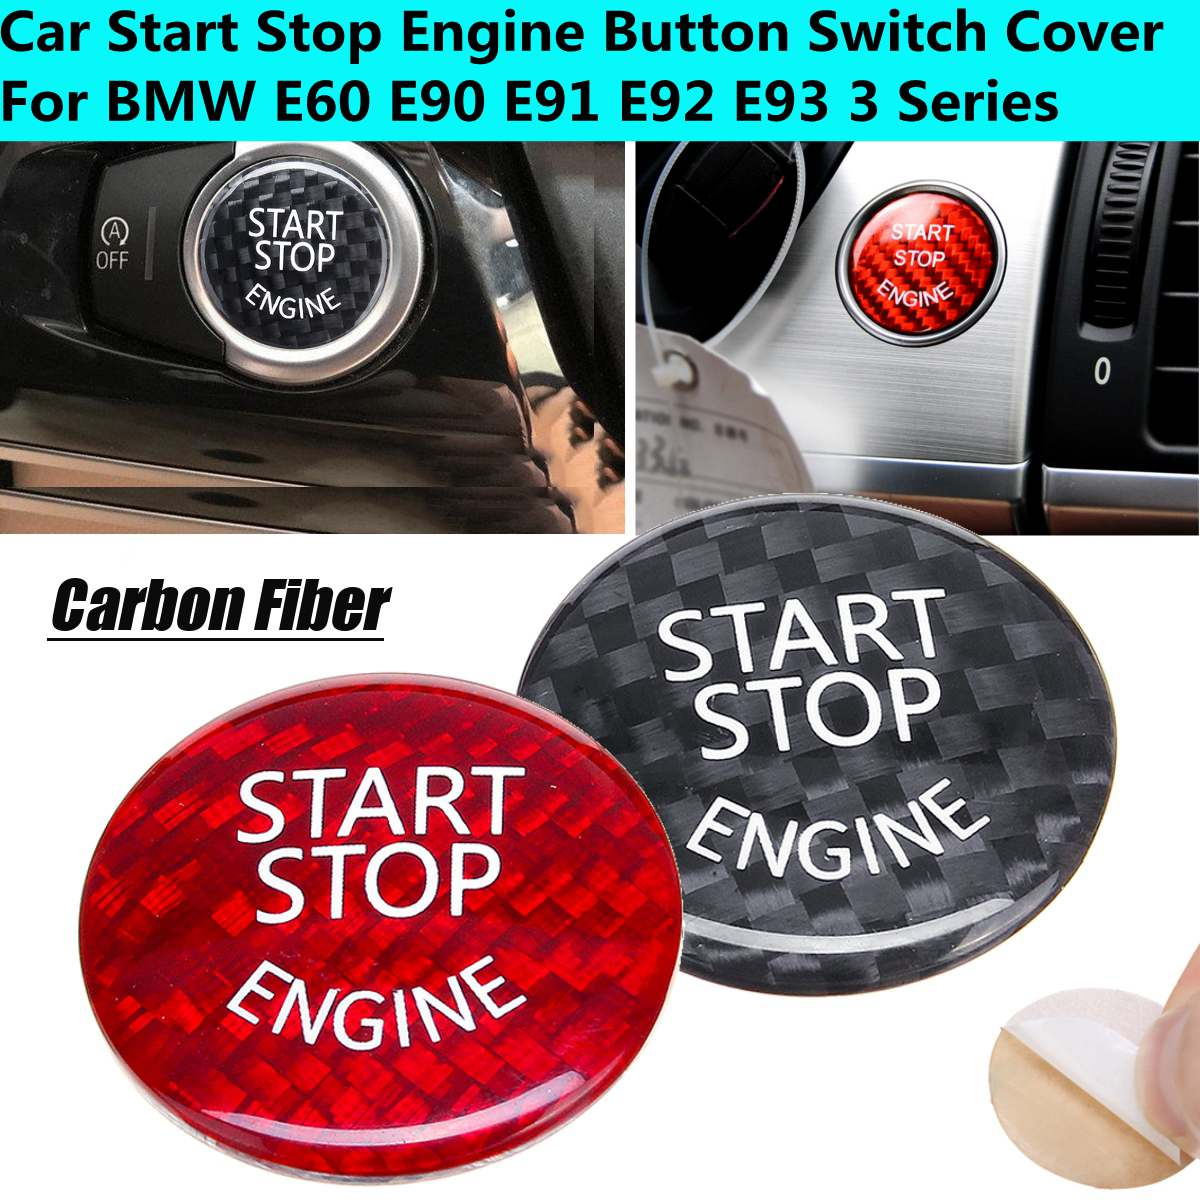 Car Start Stop Engine Button Switch Carbon Cover Carbon Fiber For BMW E60 E90 E91 E92 E93 3 Series X1 X3 X5 X6